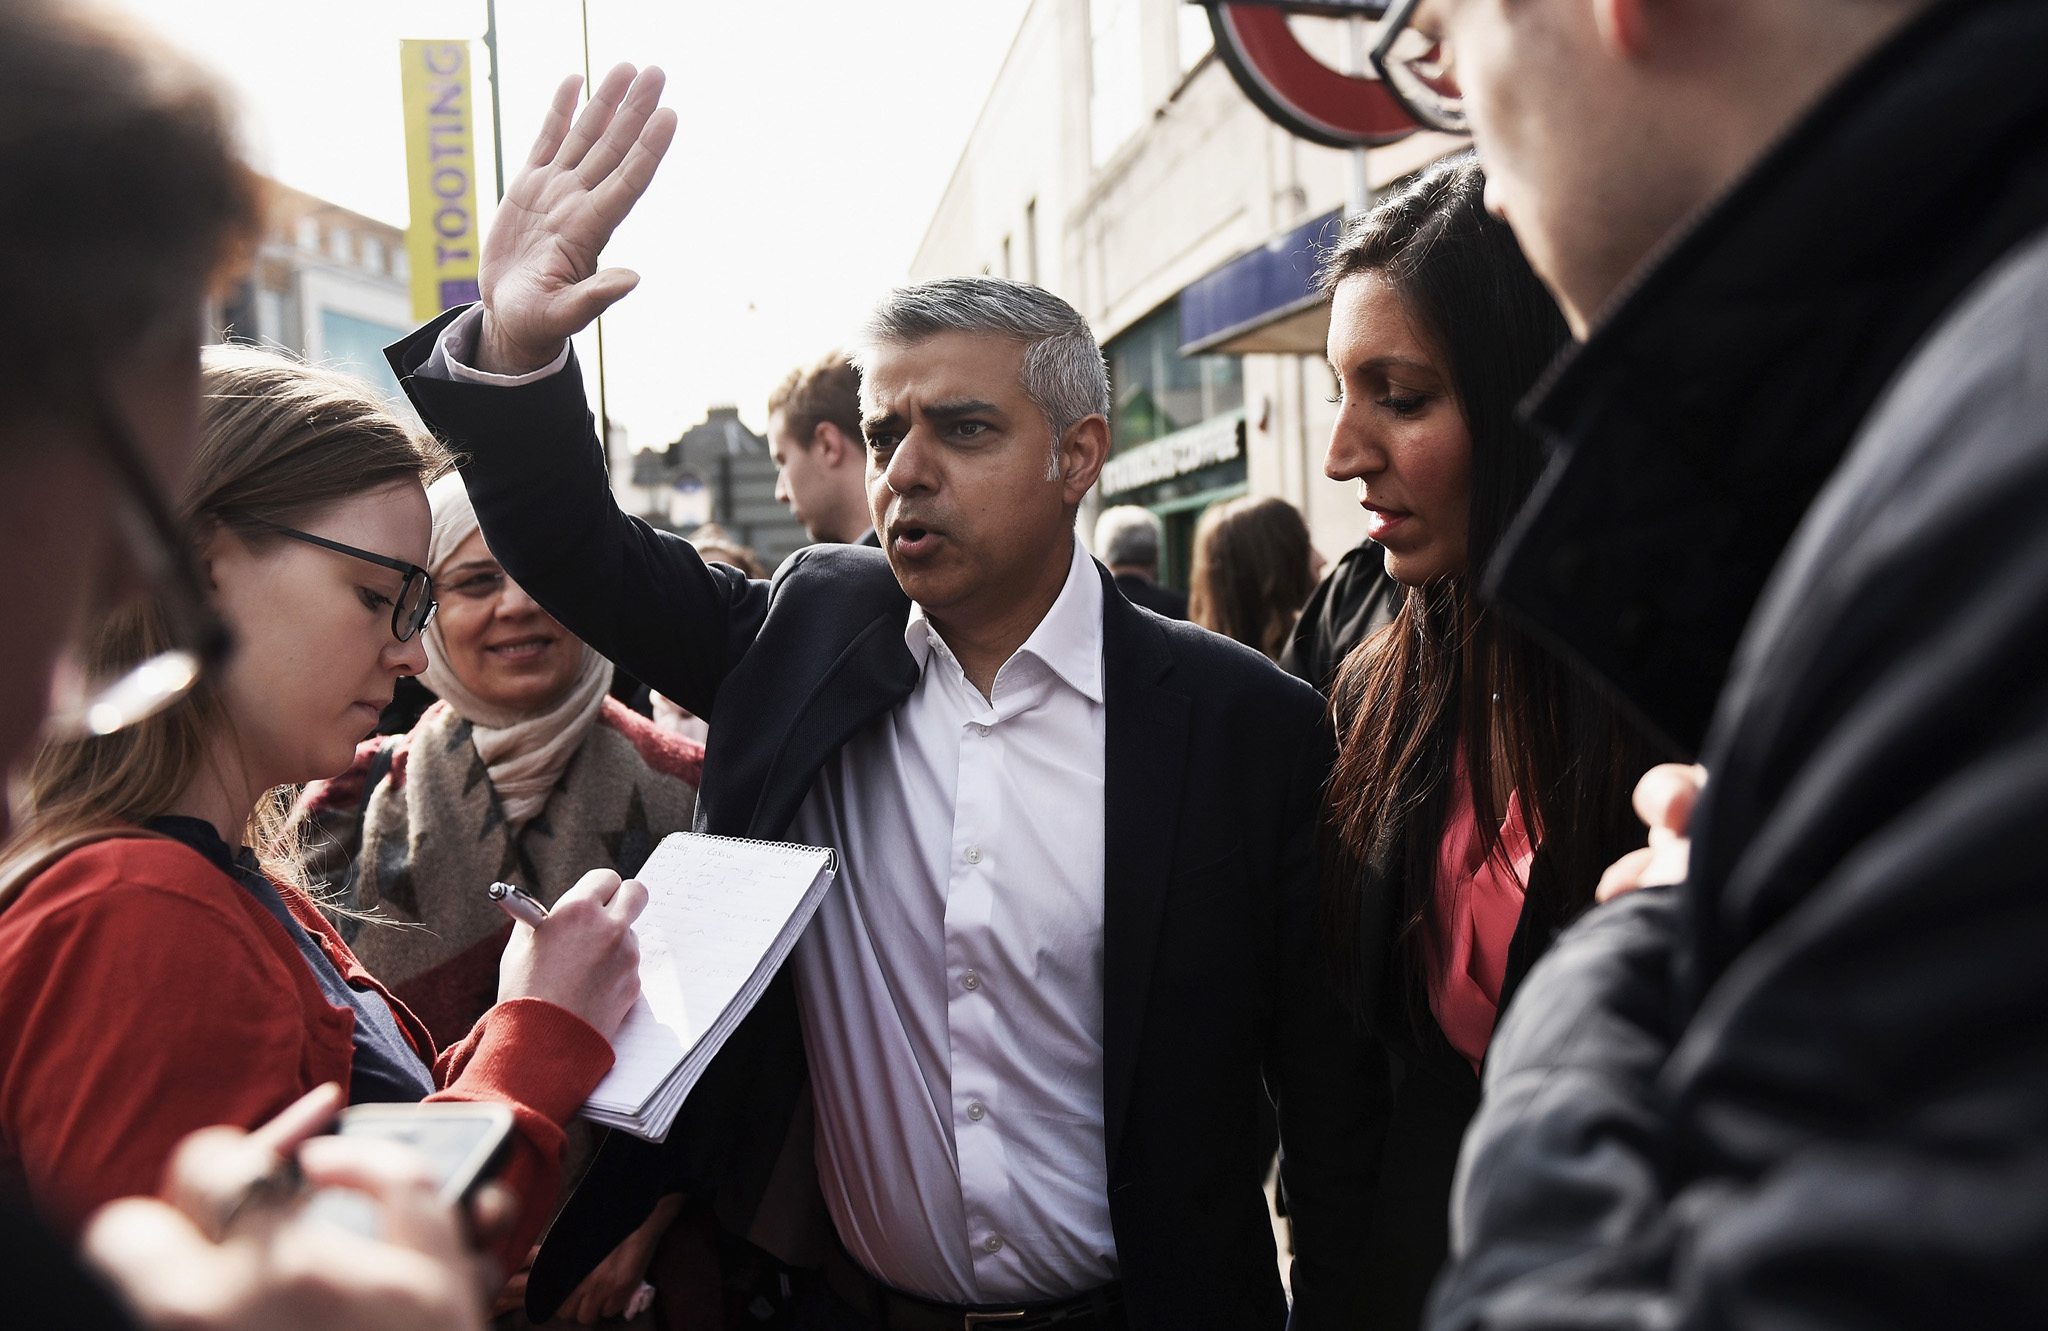 LONDON, ENGLAND - MAY 16:  Sadiq Khan, the new Mayor of London waves to a member of the public as he campaigns outside Tooting Broadway Underground station with Labour Party candidate for the local by-election Rosena Allin-Khan on May 16, 2016 in London, England. Rosena Allin-Khan is a junior accident and emergency doctor and mother of two who grew up in the constituency where Sadiq Khan's election to London Mayor has prompted a by-election.  (Photo by Mary Turner/Getty Images)